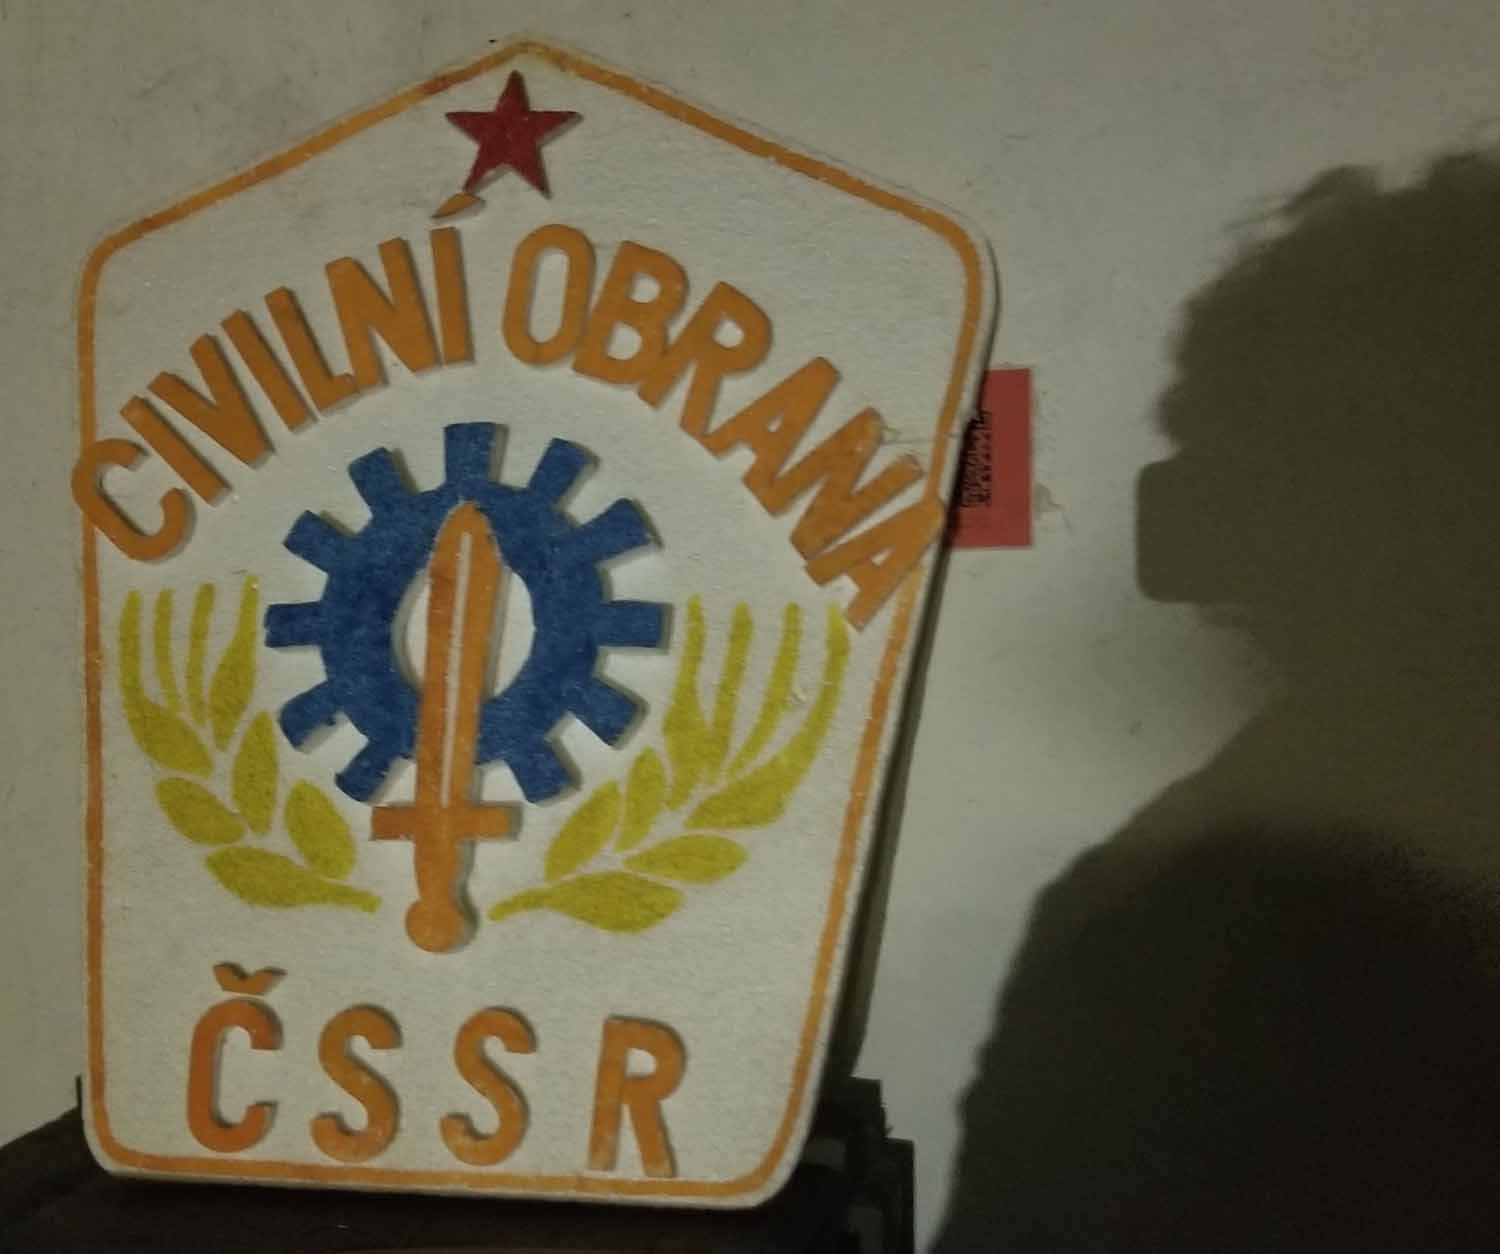 Czech-Republic-Brno-10-Z-Bunker-CSSR-Shield